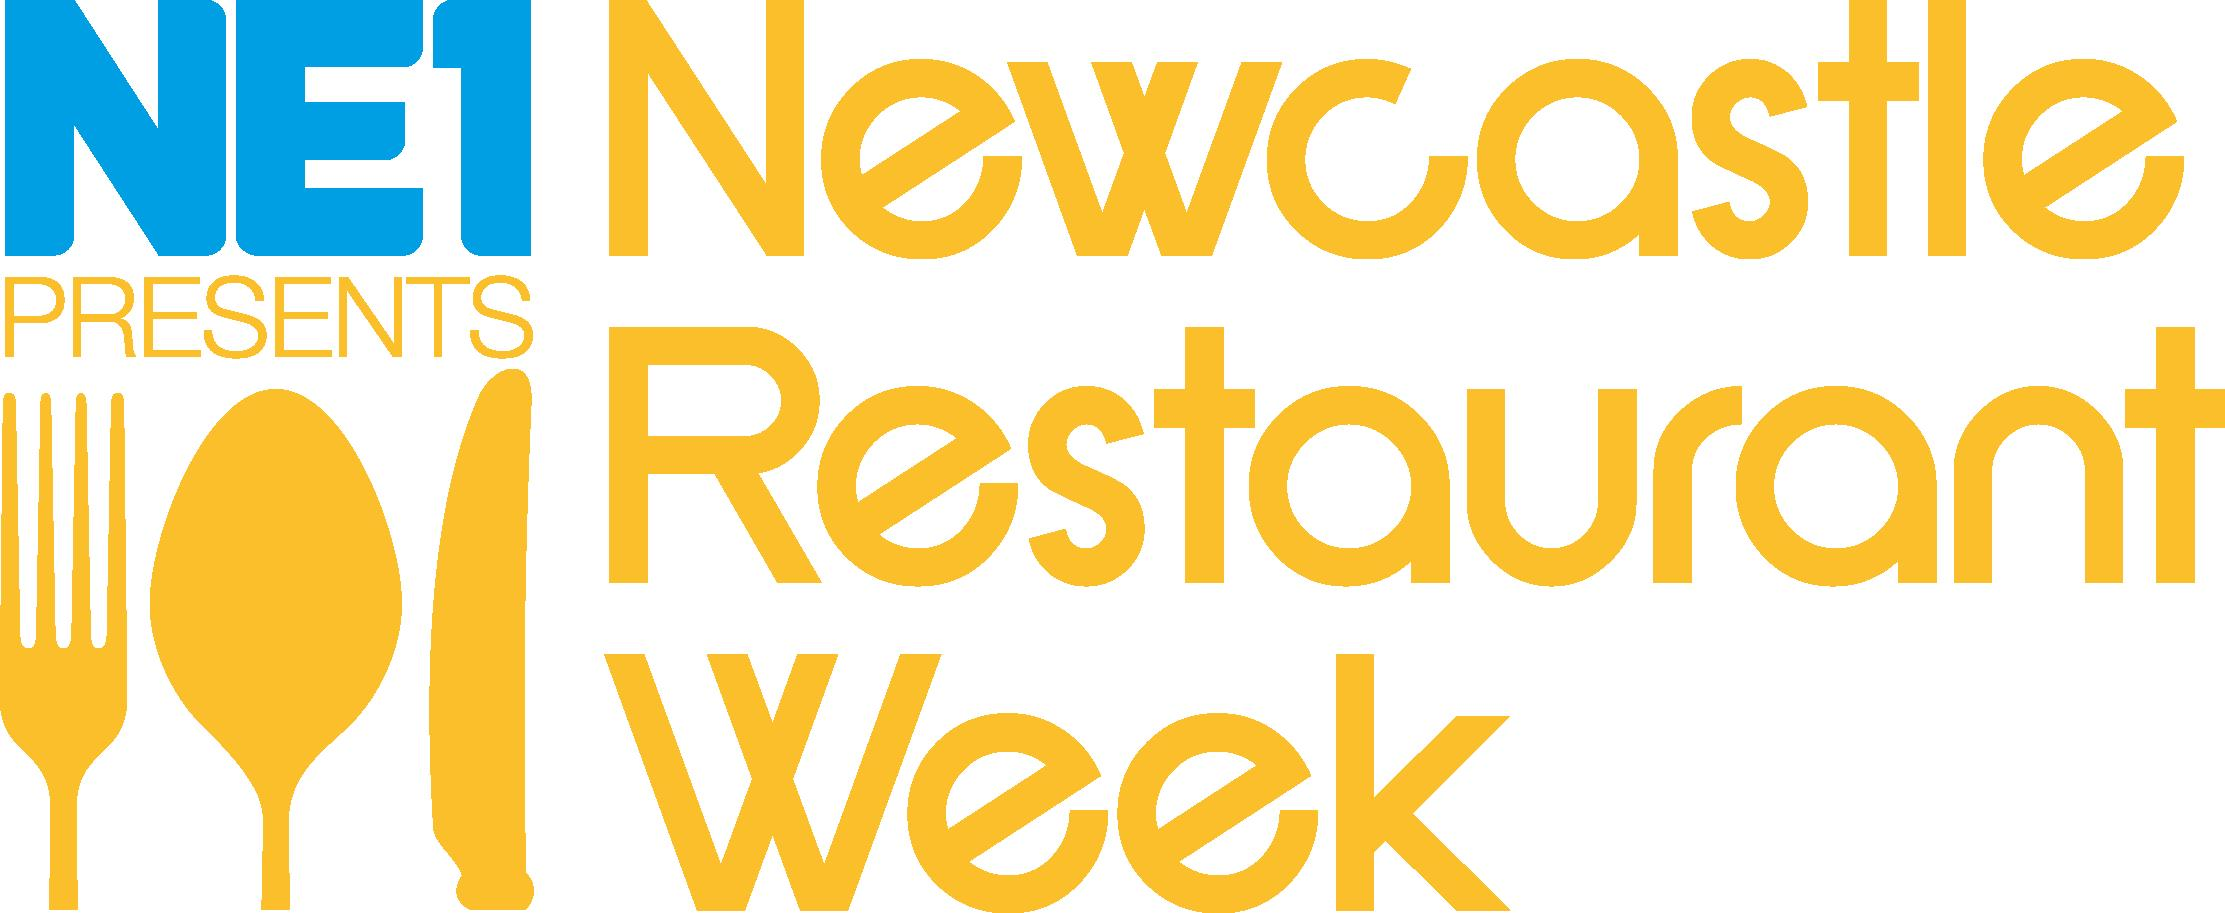 Restaurant Week Newcastle August